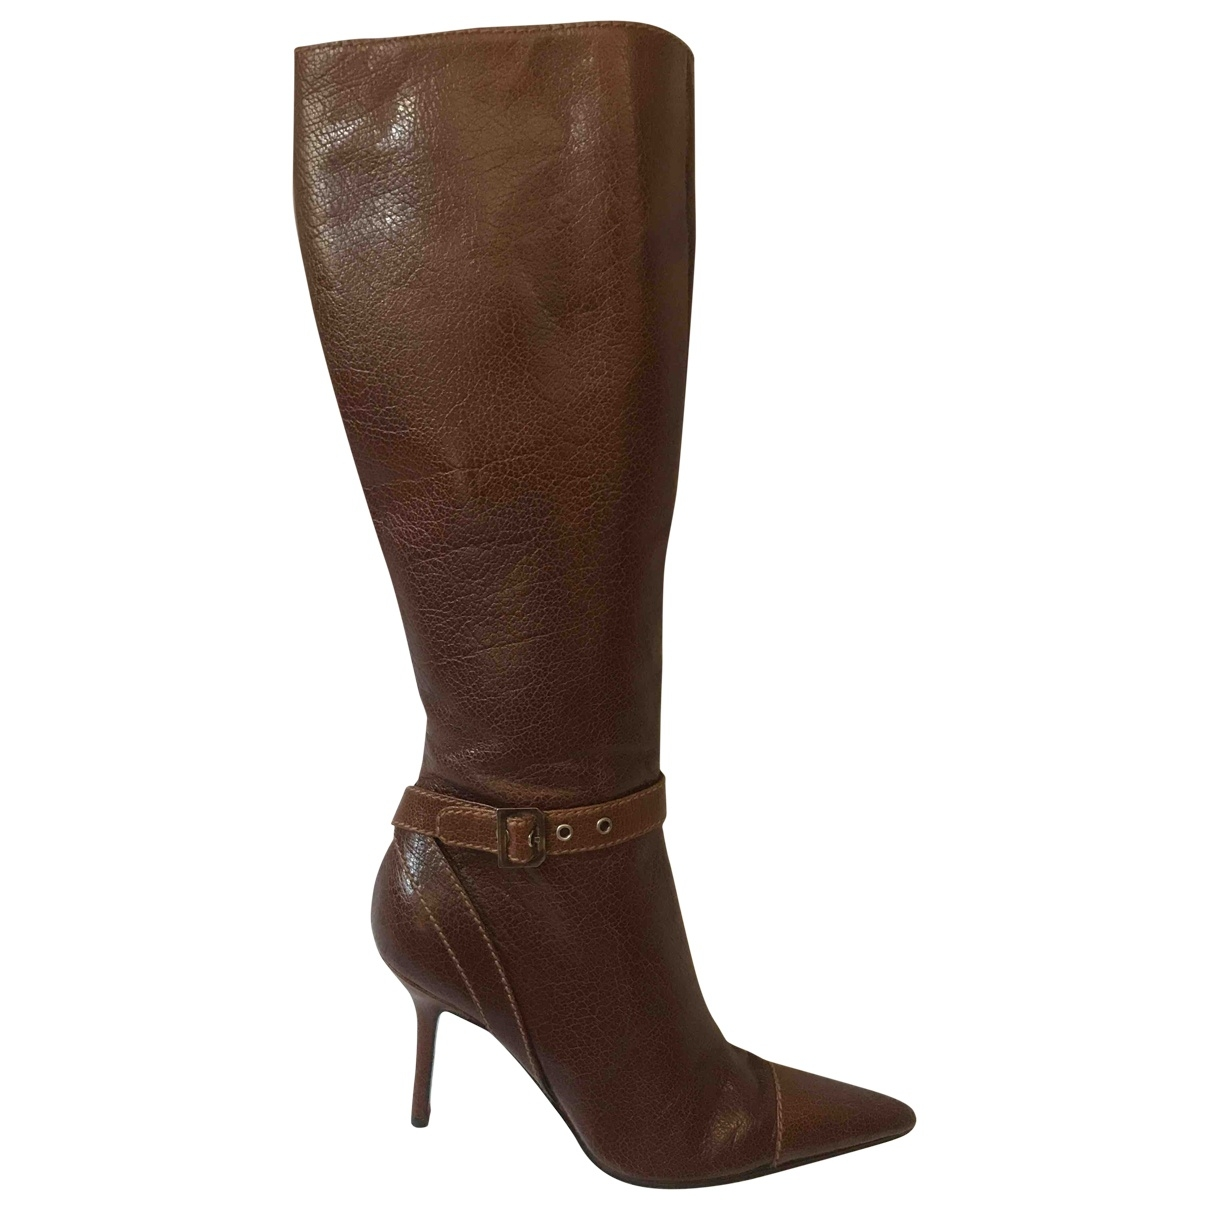 Dolce & Gabbana \N Brown Leather Boots for Women 38 EU